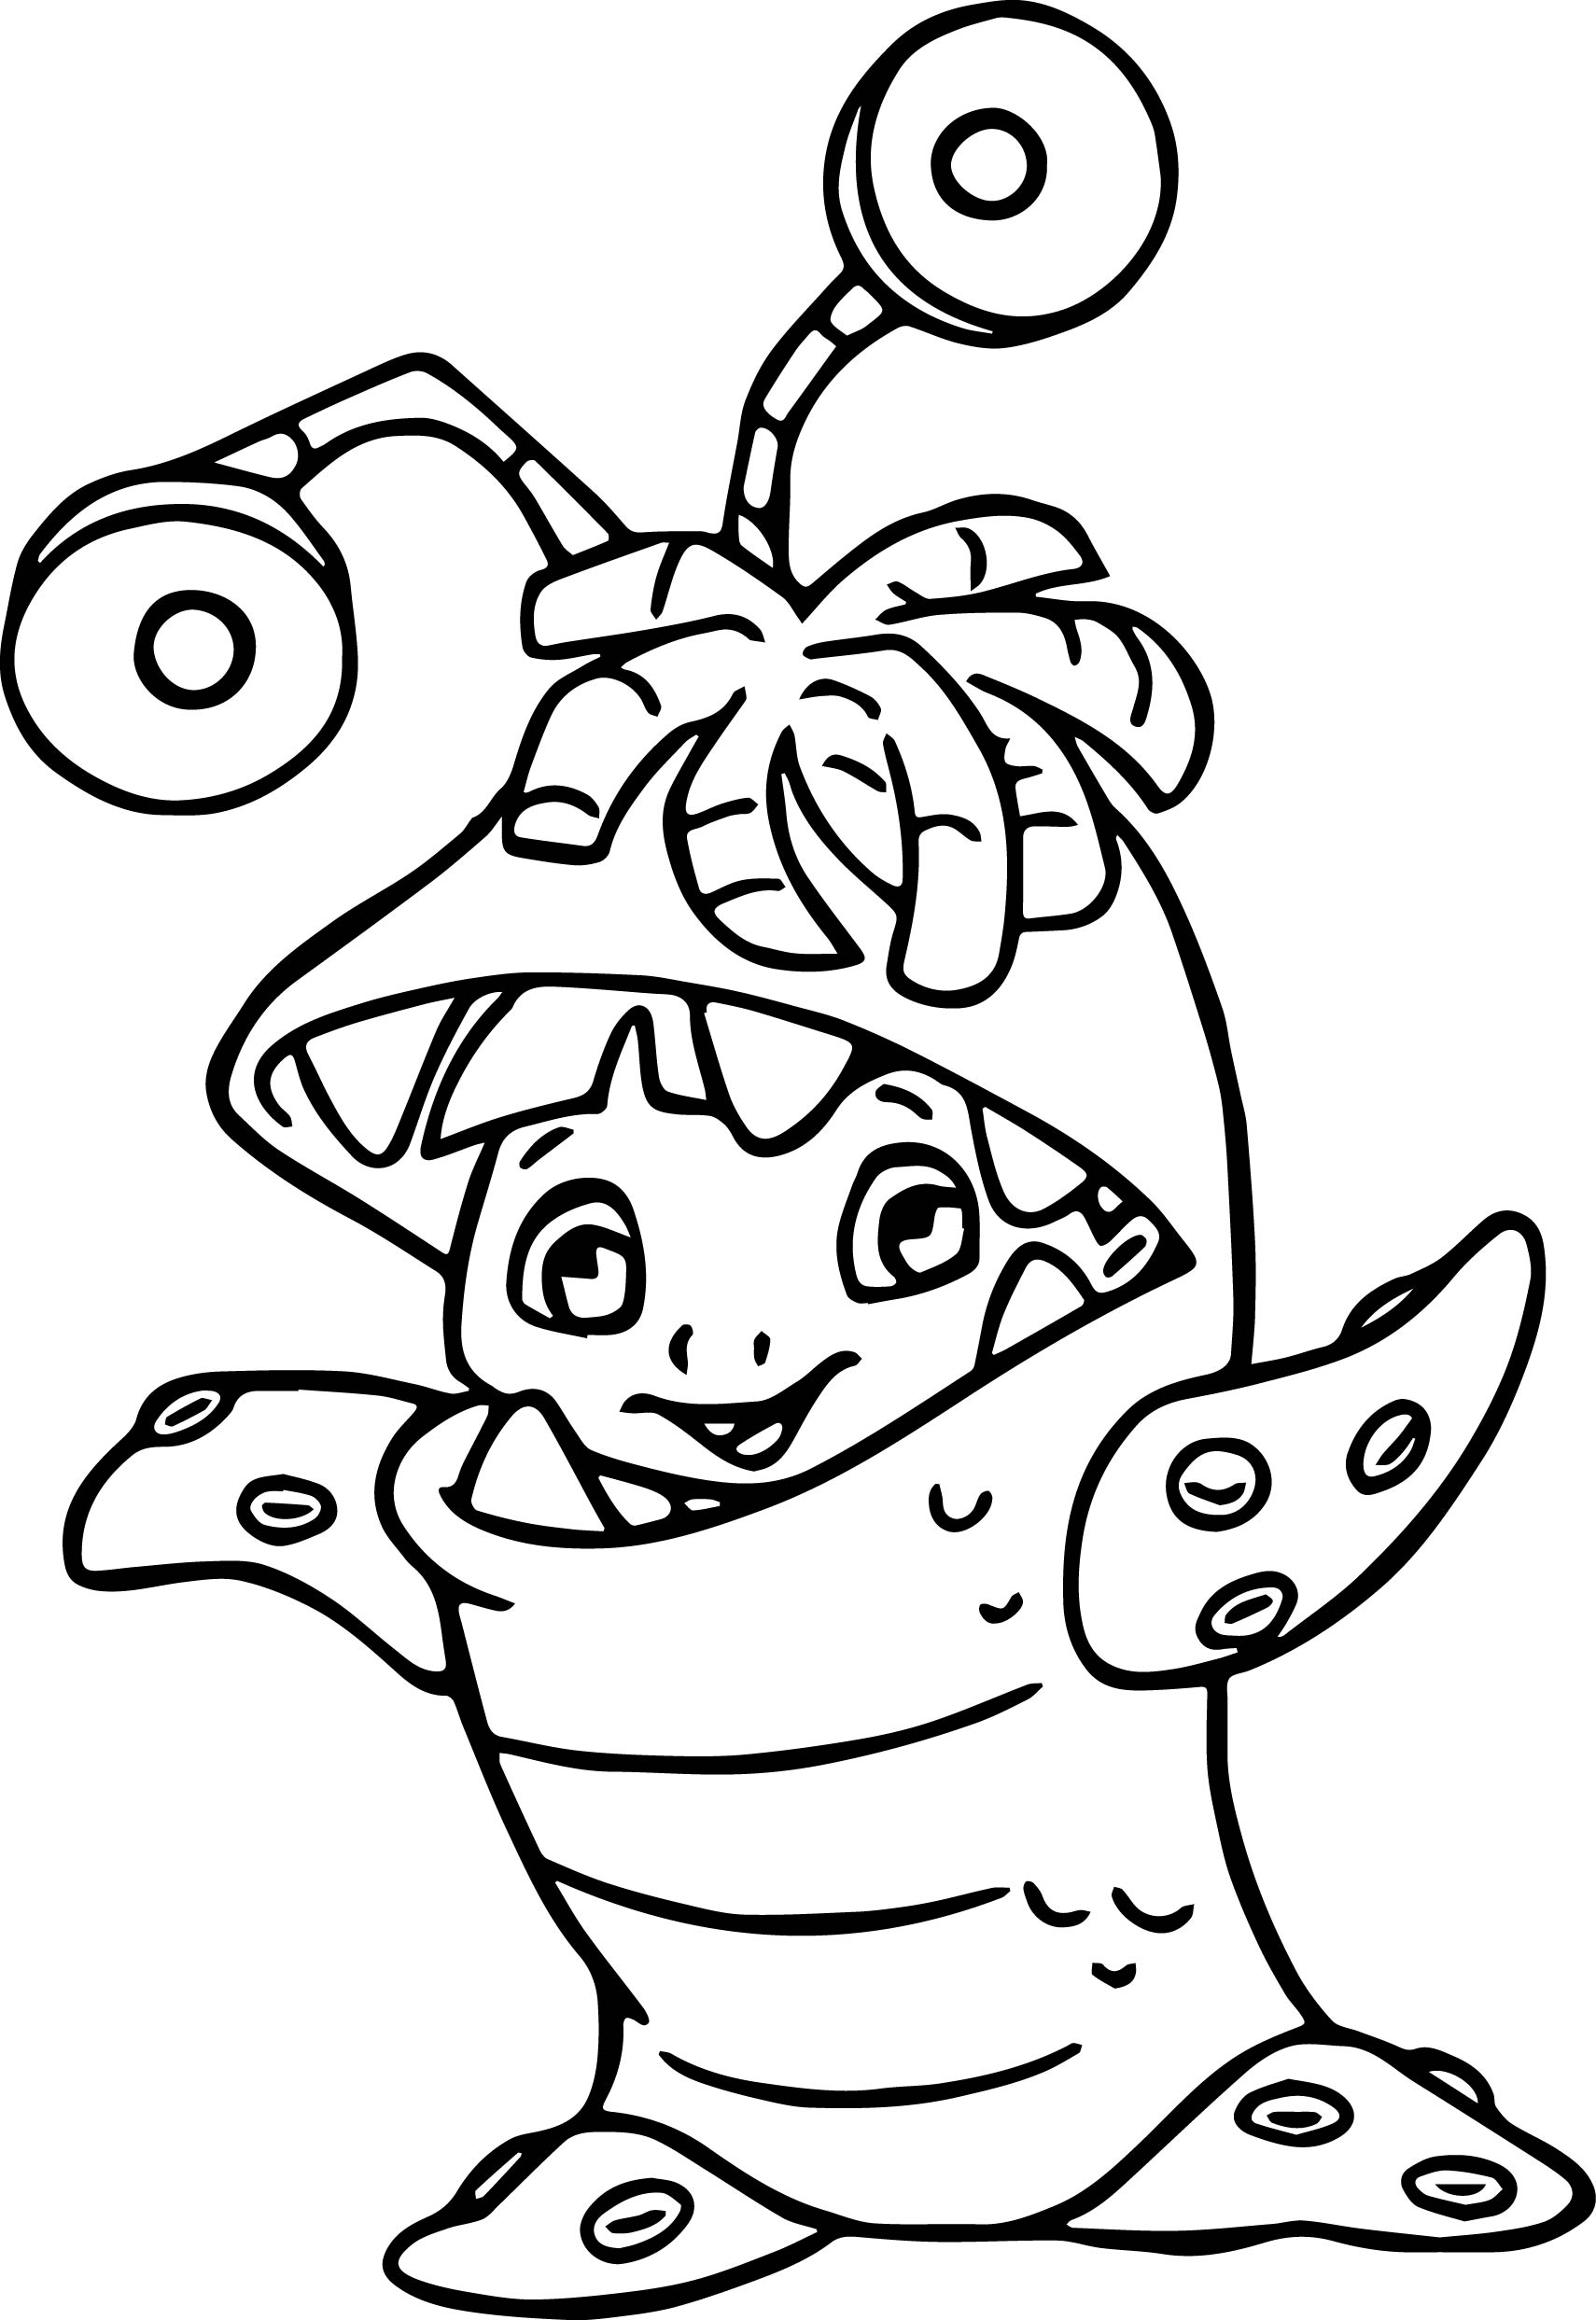 1710x2486 Monsters Inc Doors Coloring Pages Gallery Free Coloring Sheets